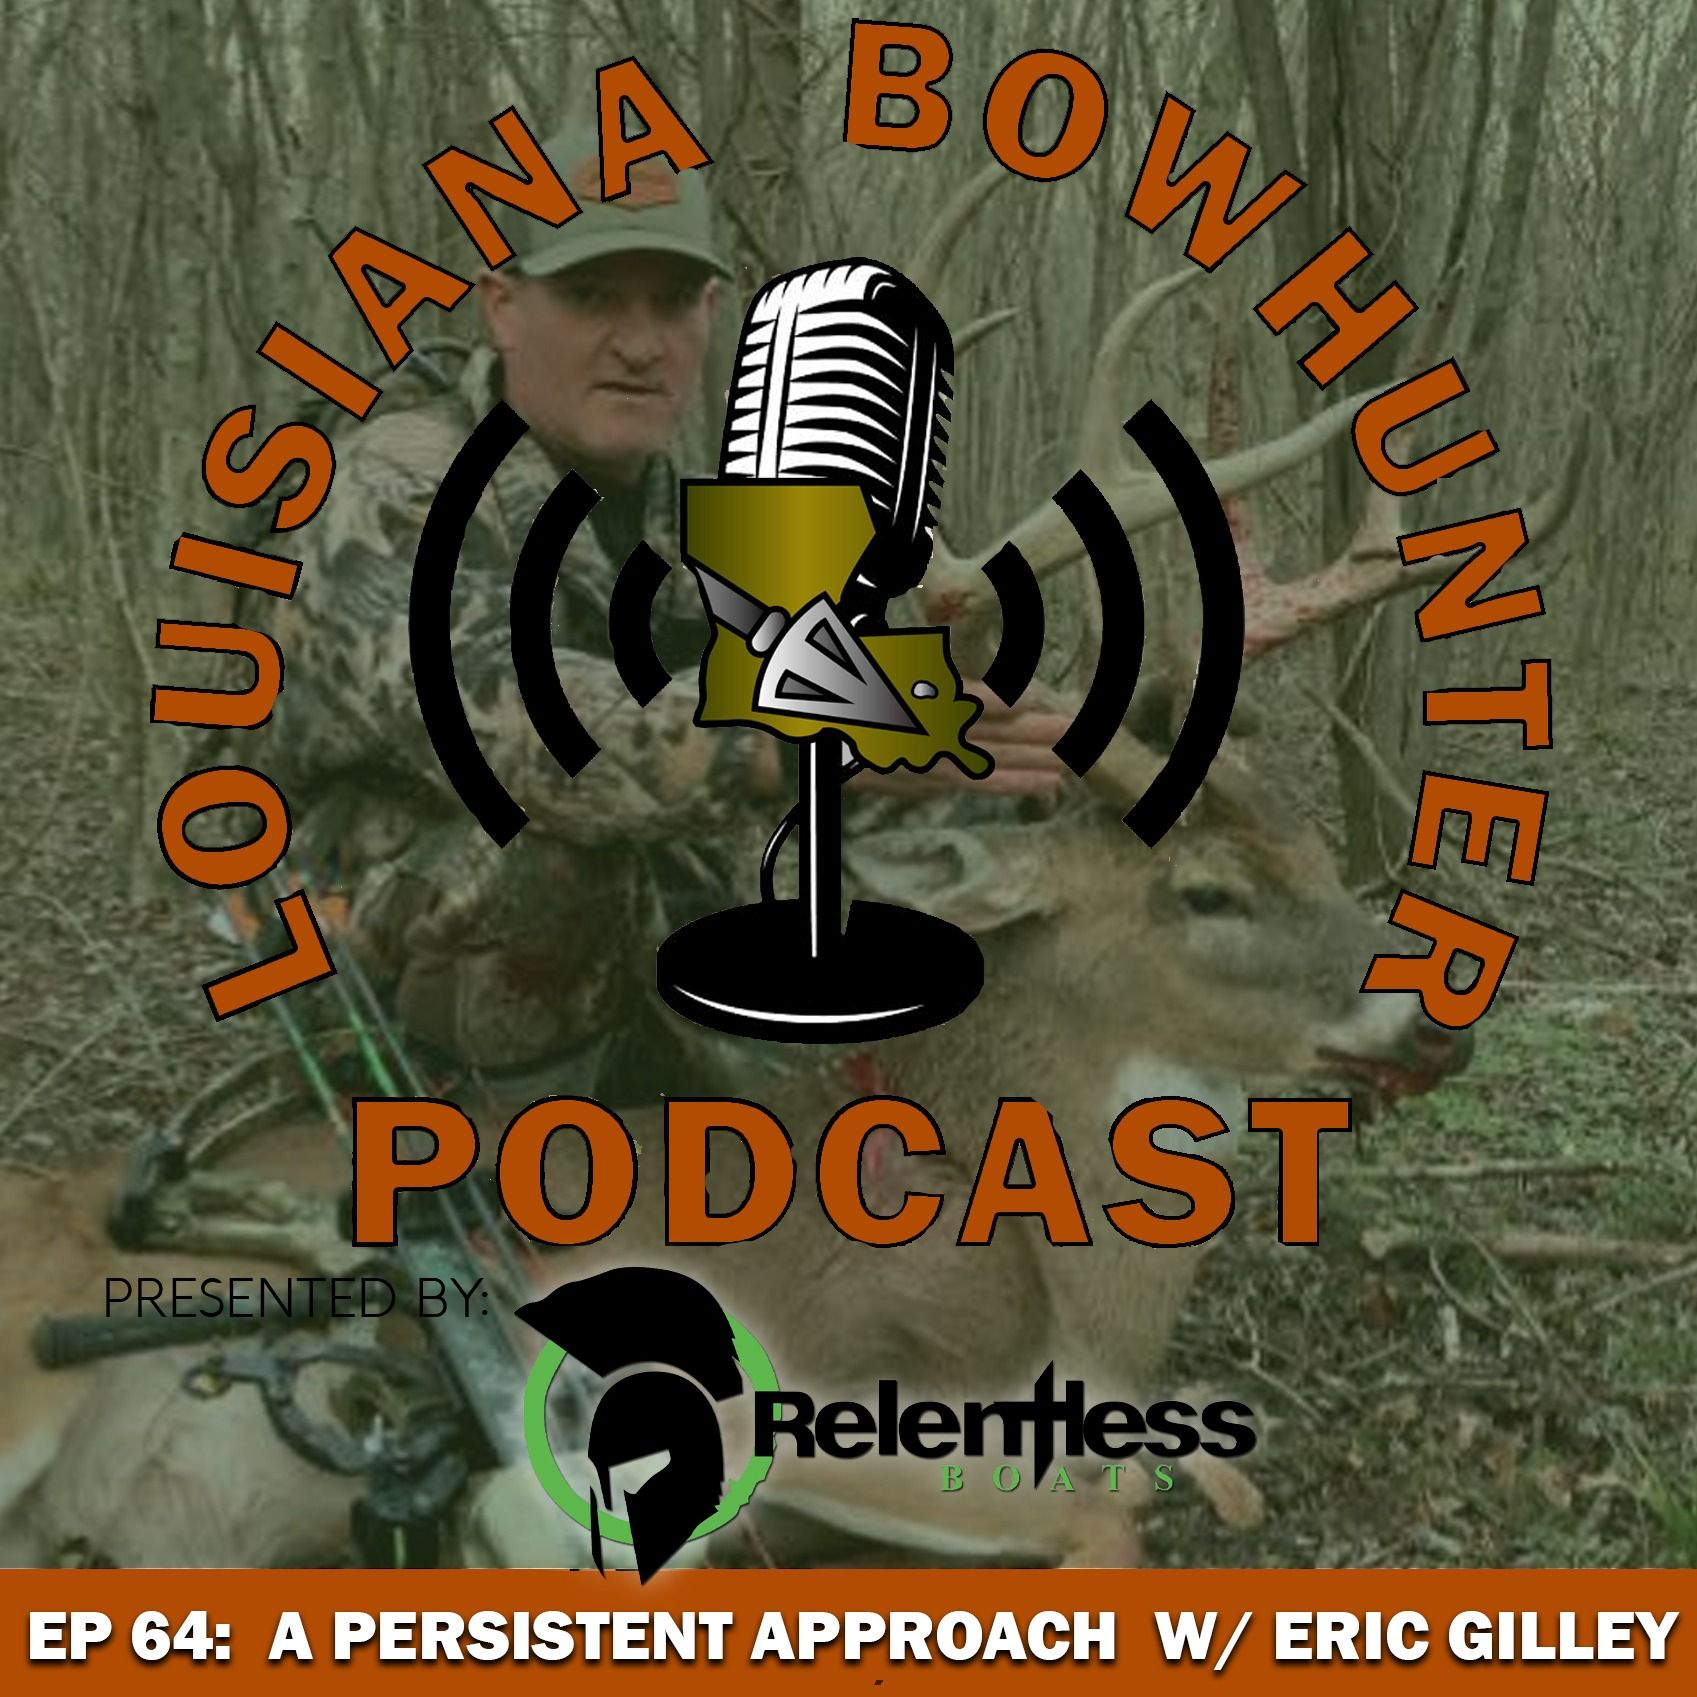 Episode 64: A Persistent Approach w/ Eric Gilley